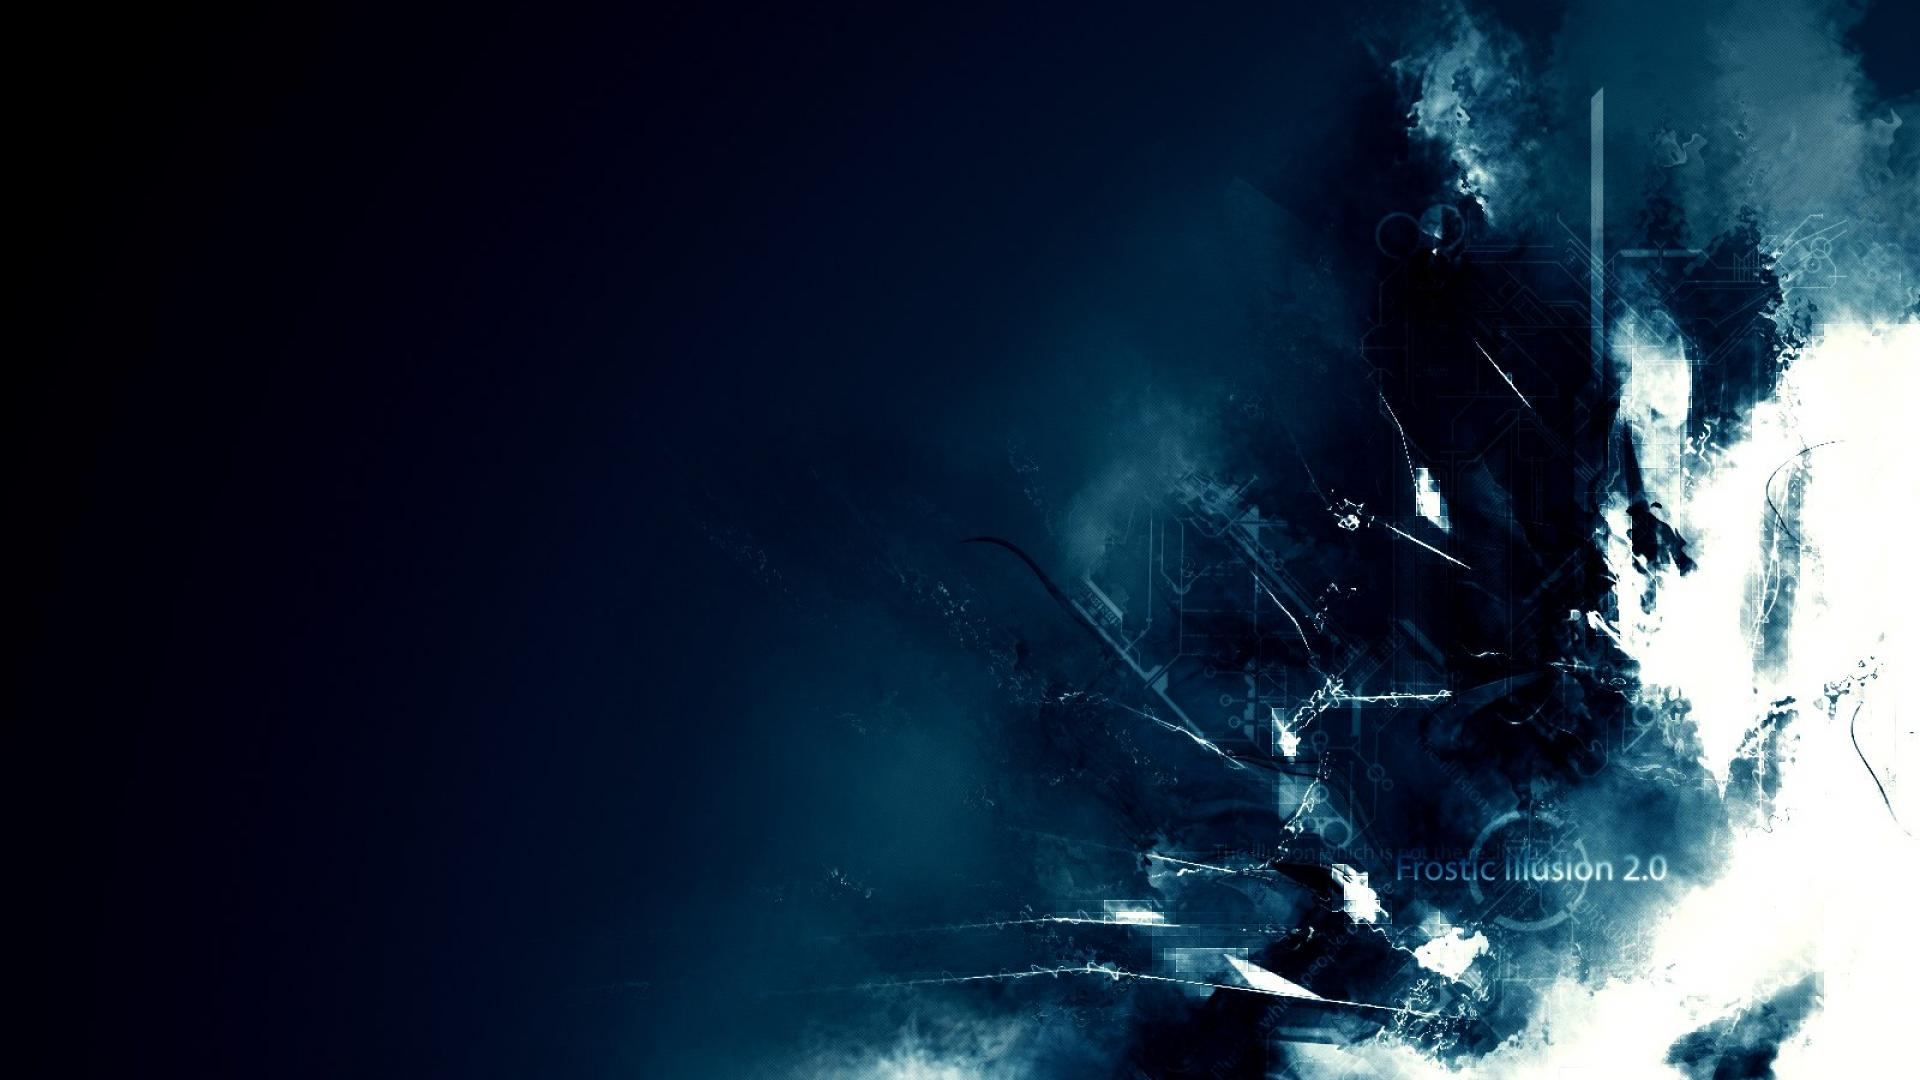 Abstract Blue Flag German Deutsch Frost Illusion Hd Wallpaper 1920x1080px